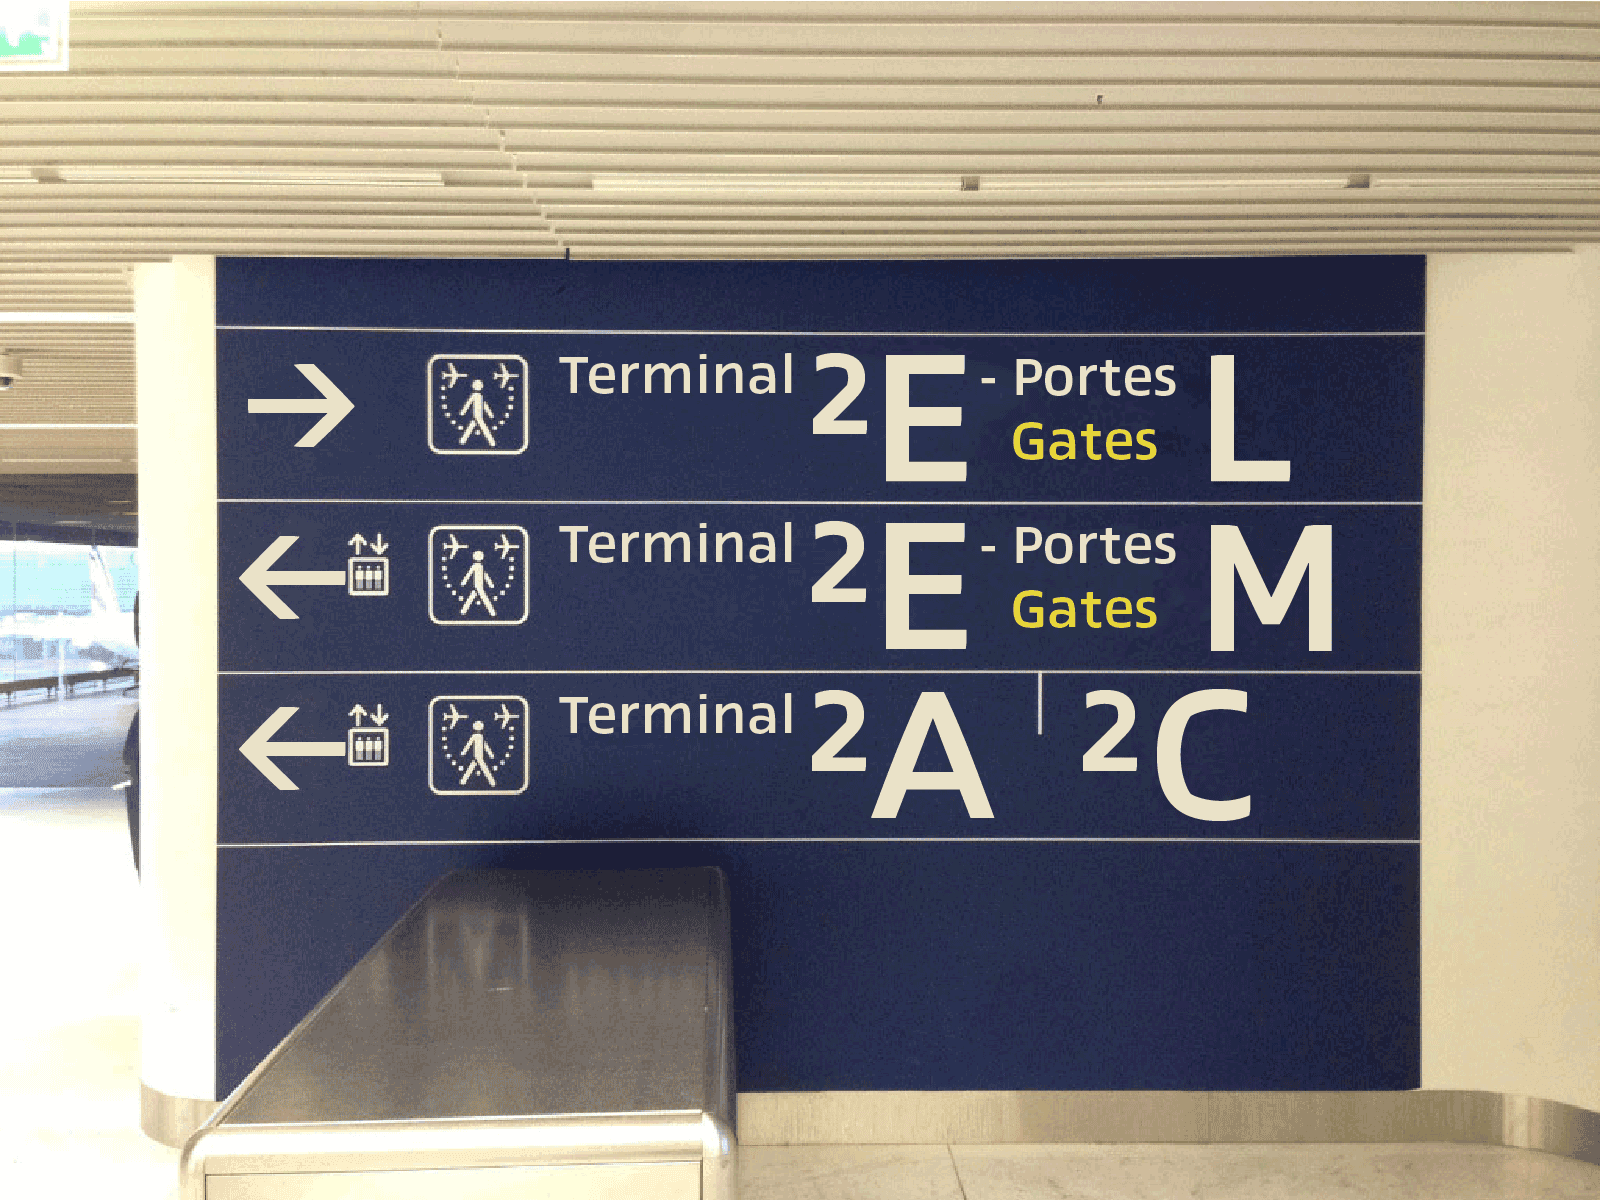 Project: Homage to Adrian Frutiger typeface, cover version of Roissy Charles de Gaulle airport signage